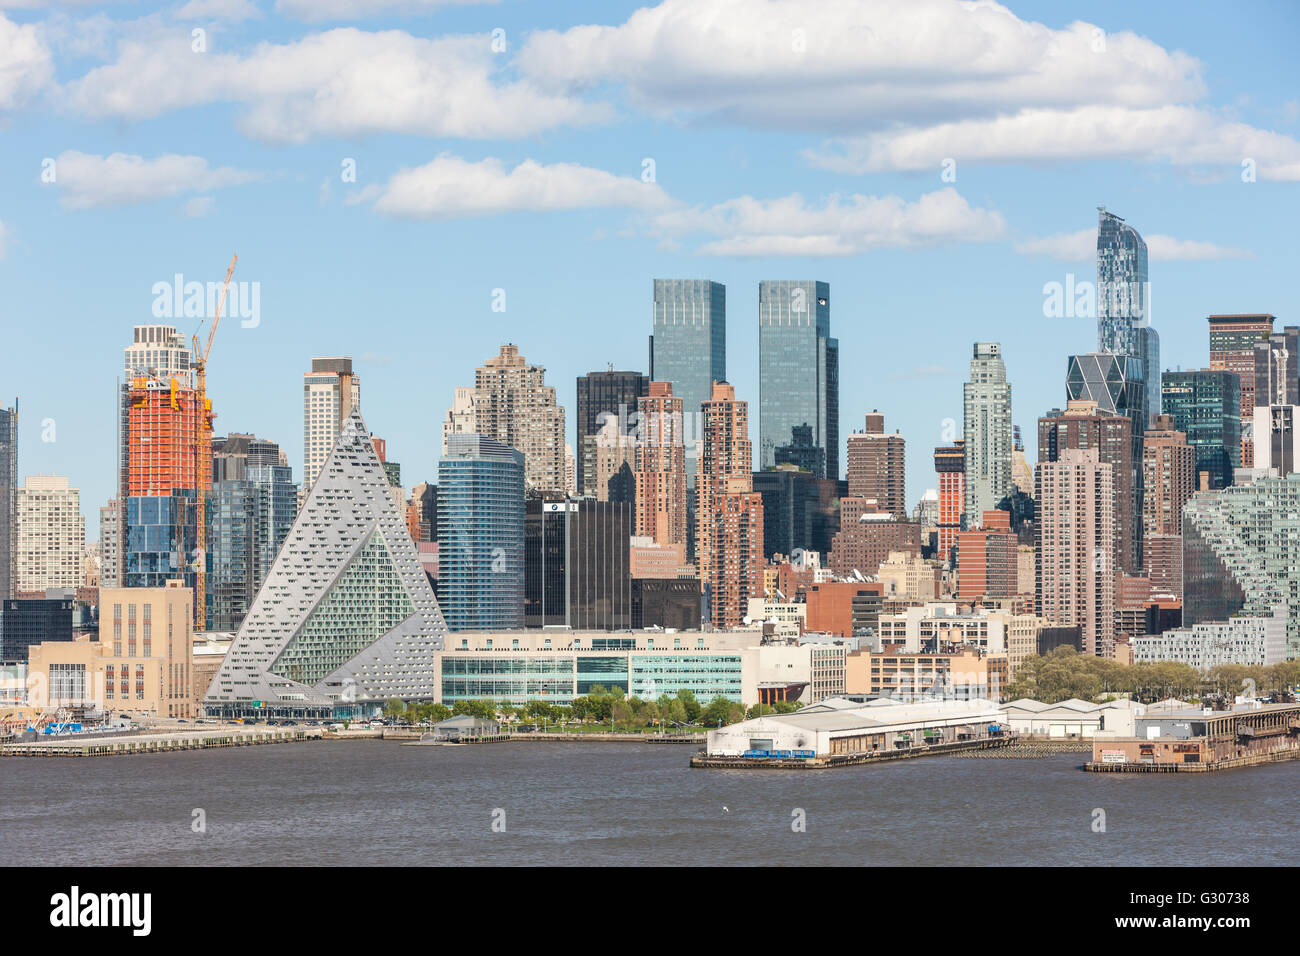 Part of the mid-town skyline, including new development on West 57th street, in New York City. - Stock Image